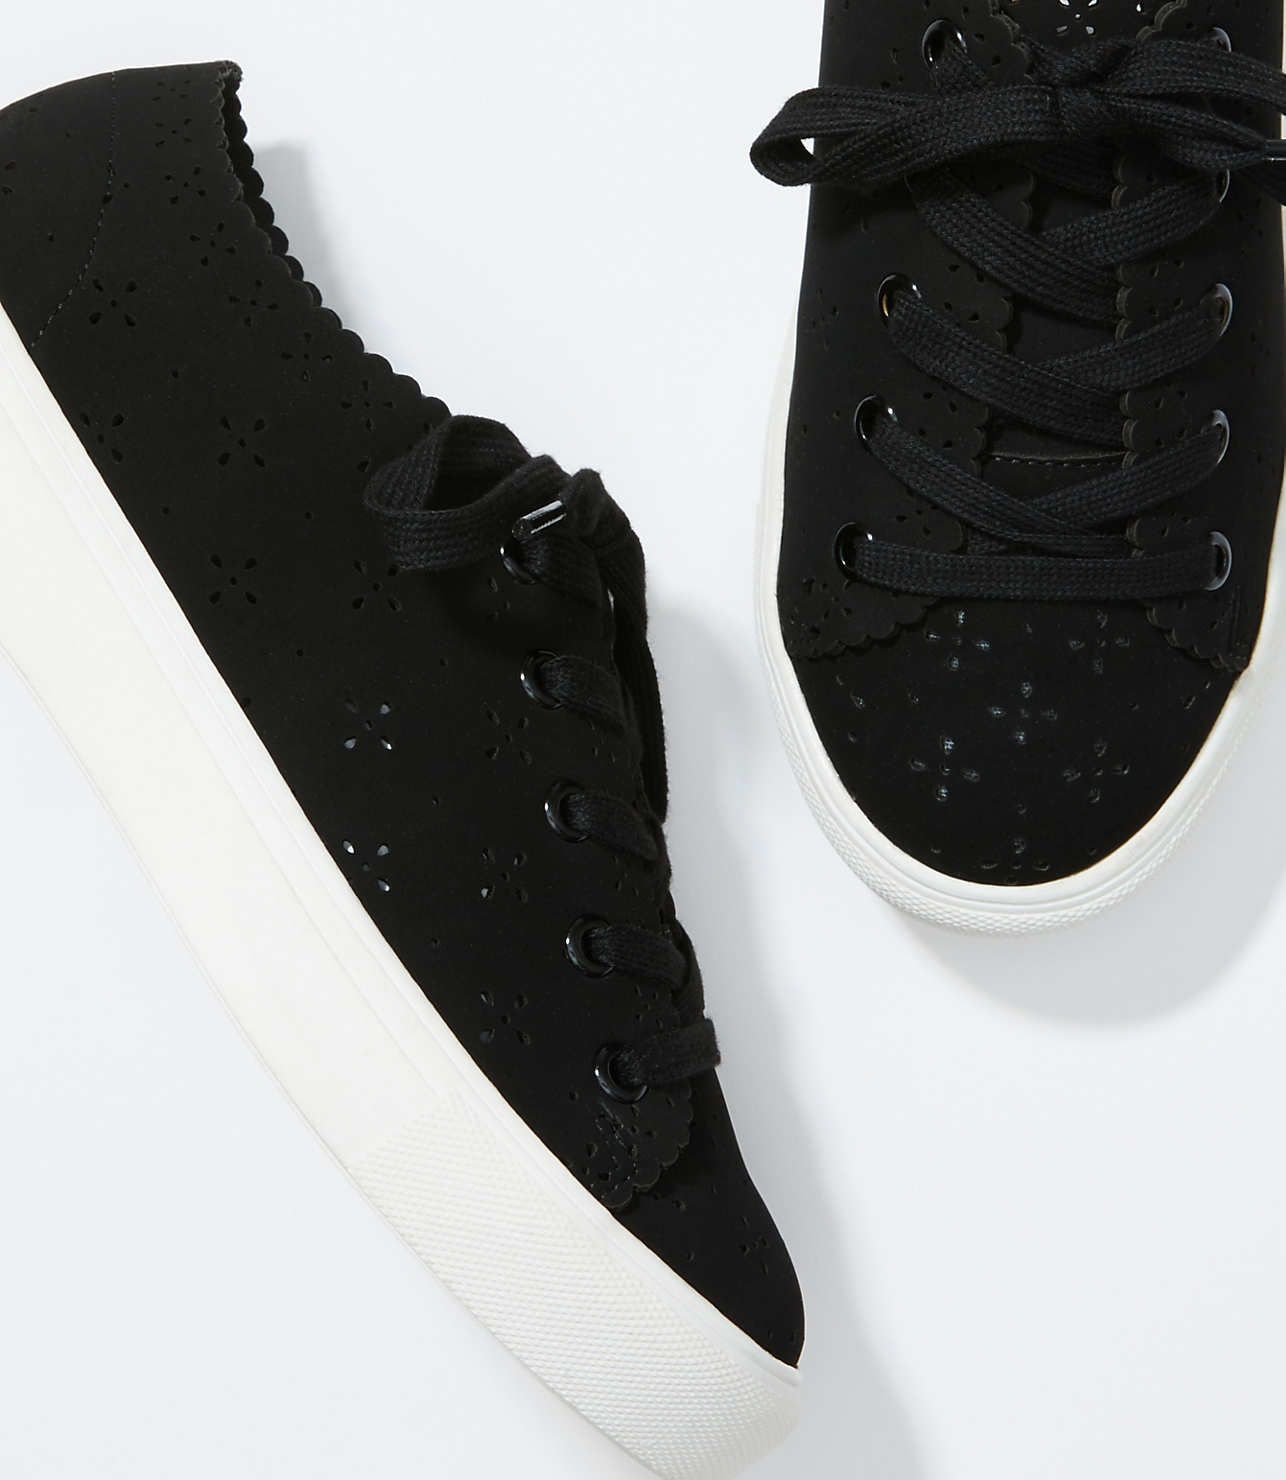 Eyelet Lace Up Sneakers   LOFT